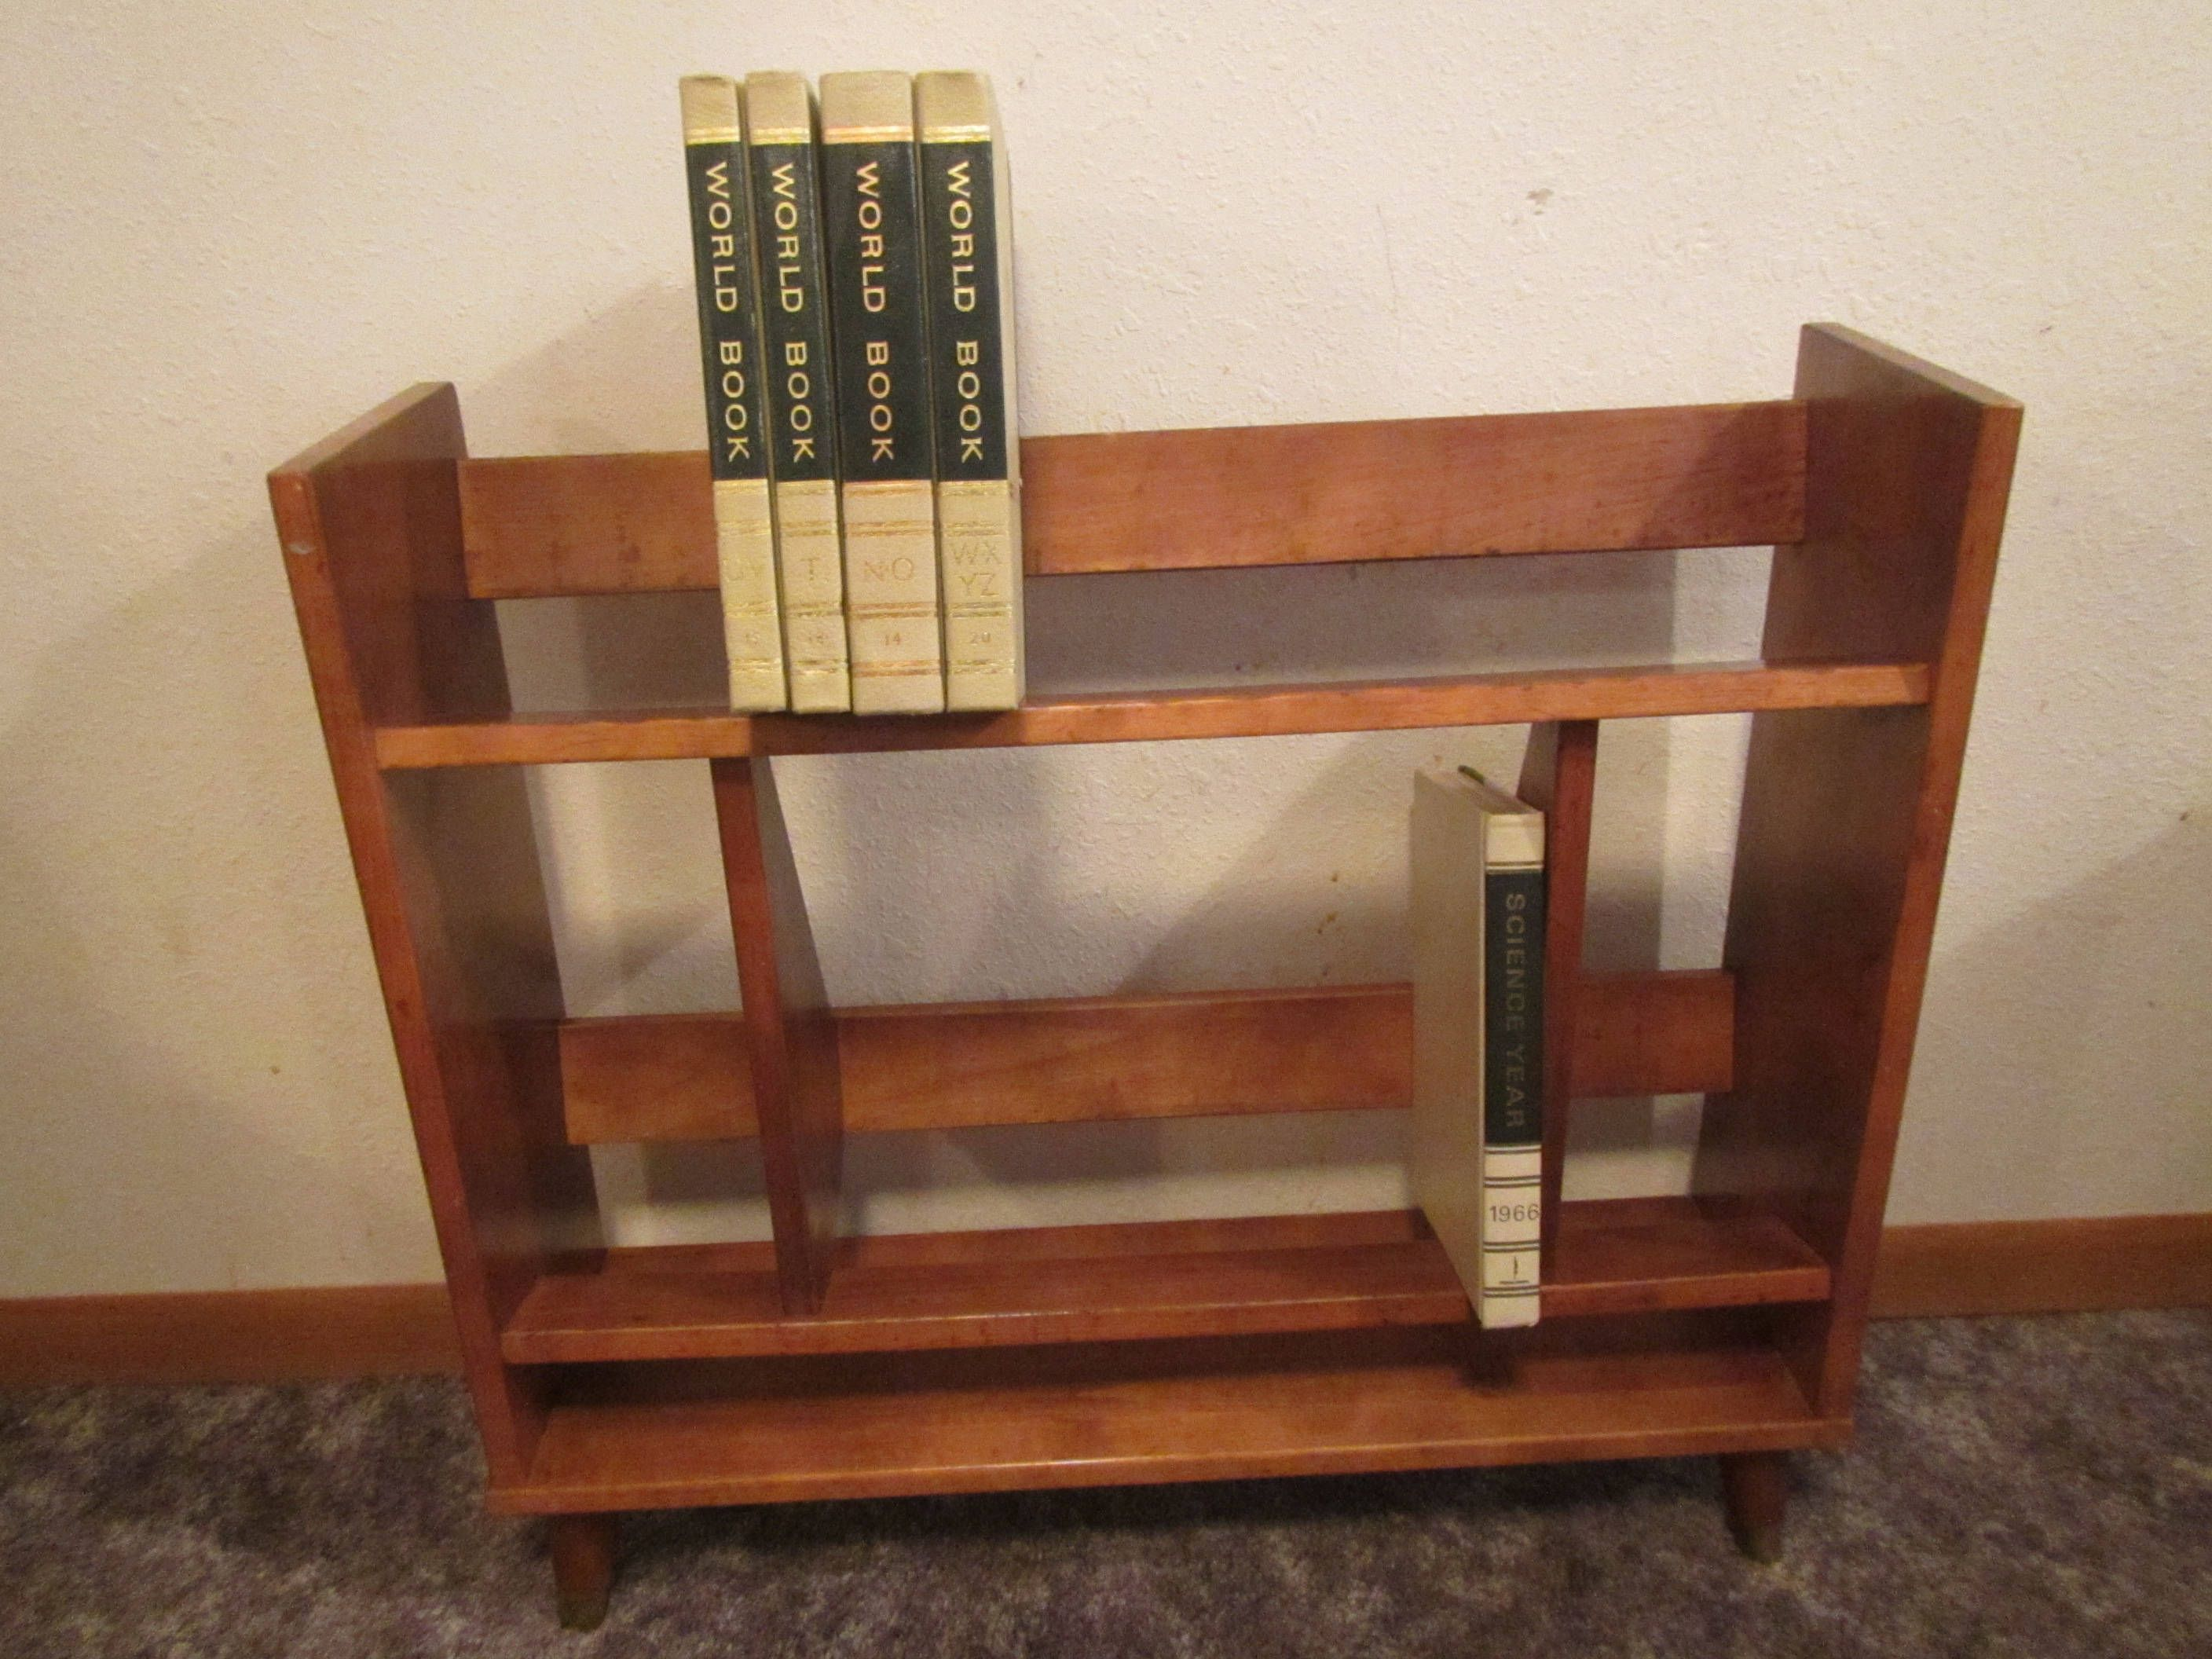 Encyclopedia Book Case That Came With 1970s World Book Etsy Vintage Bookcase Wood Book Shelves